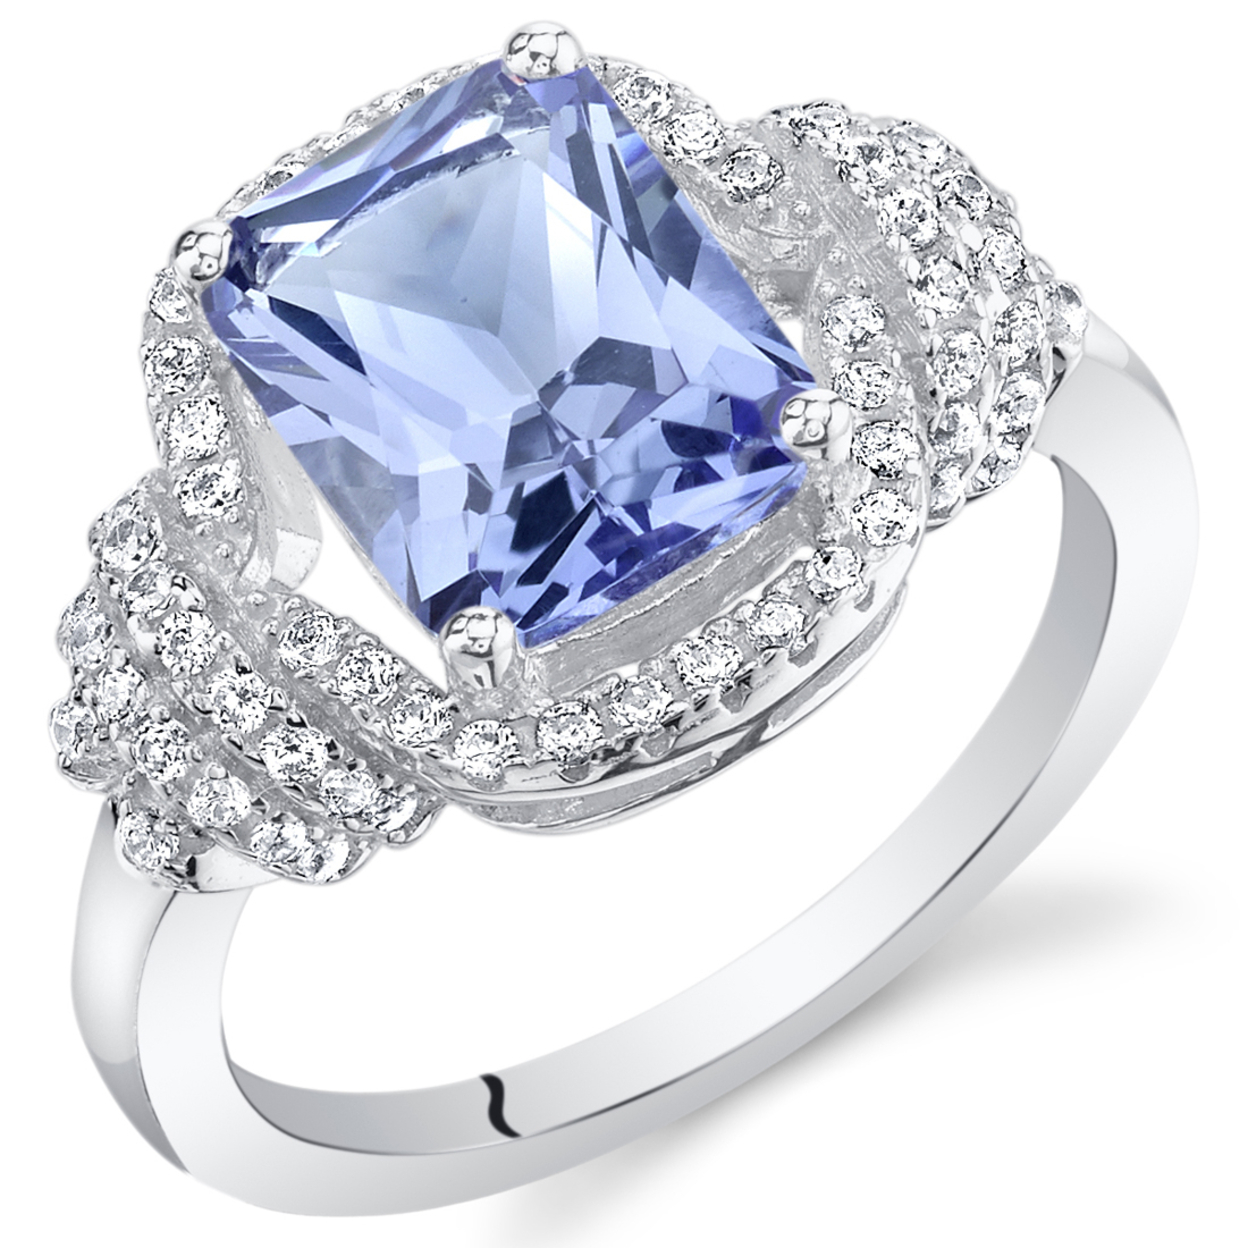 Oravo Simulated Tanzanite Sterling Silver Cocktail Ring